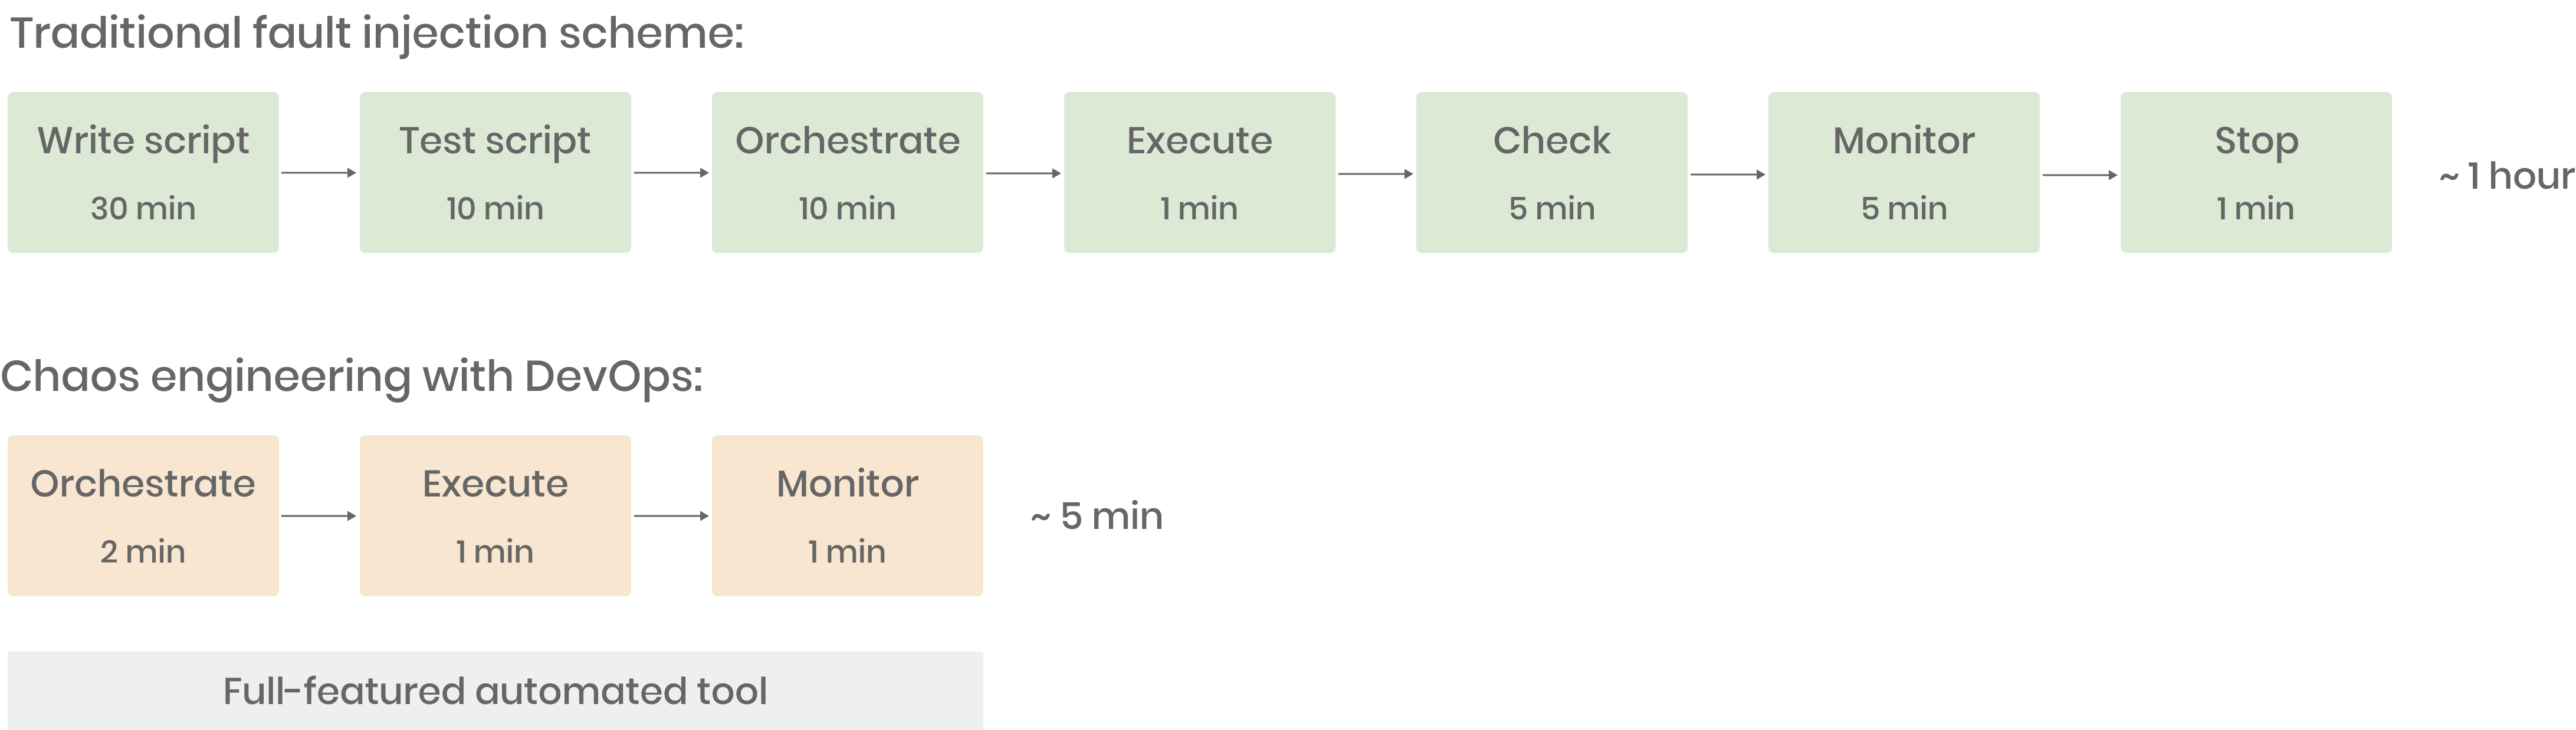 Chaos engineering with DevOps ensures efficient fault injection